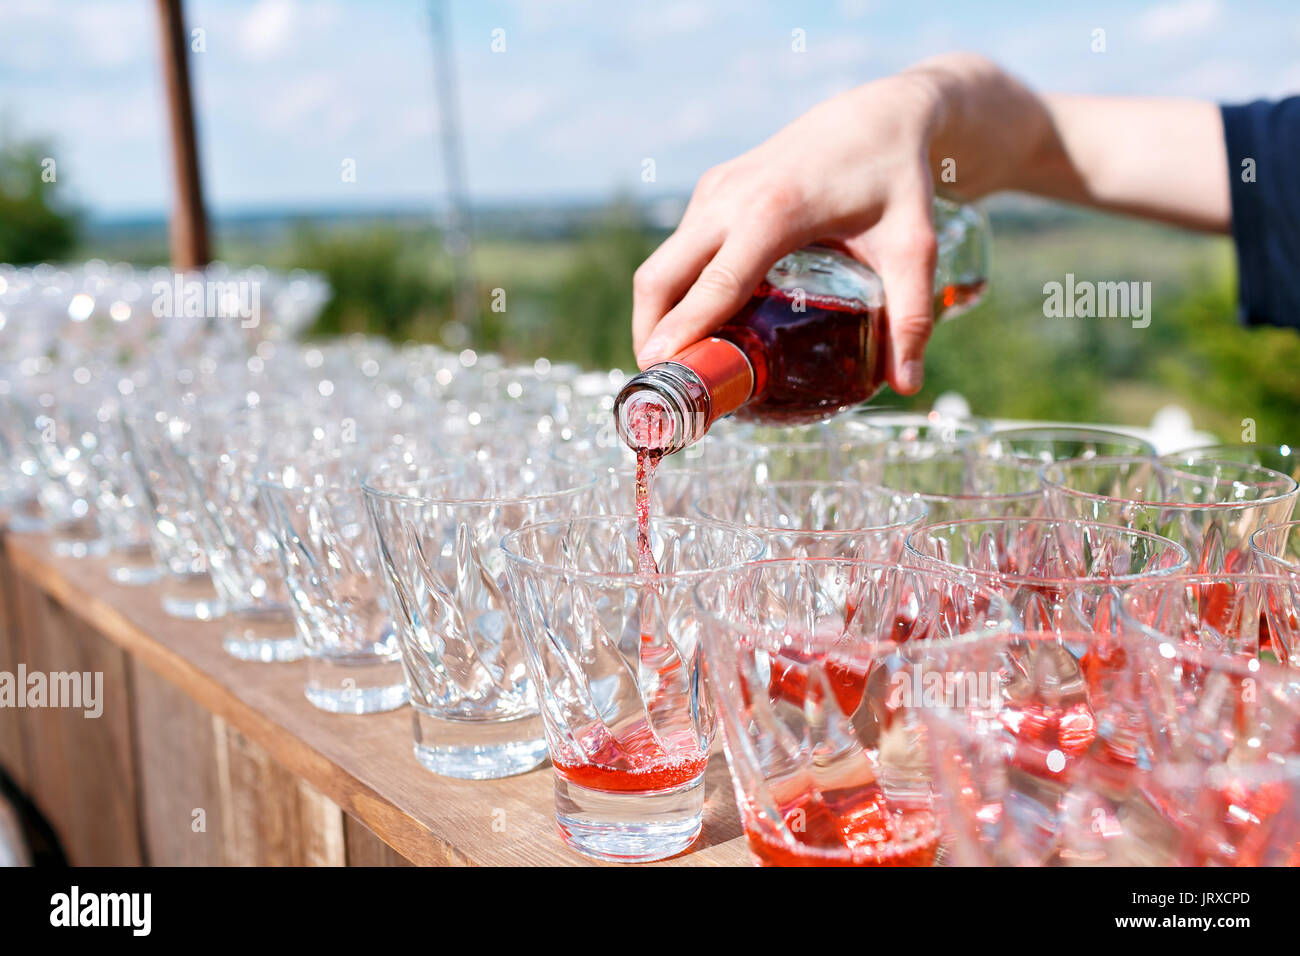 Bartender pouring cocktail in glasses - Stock Image